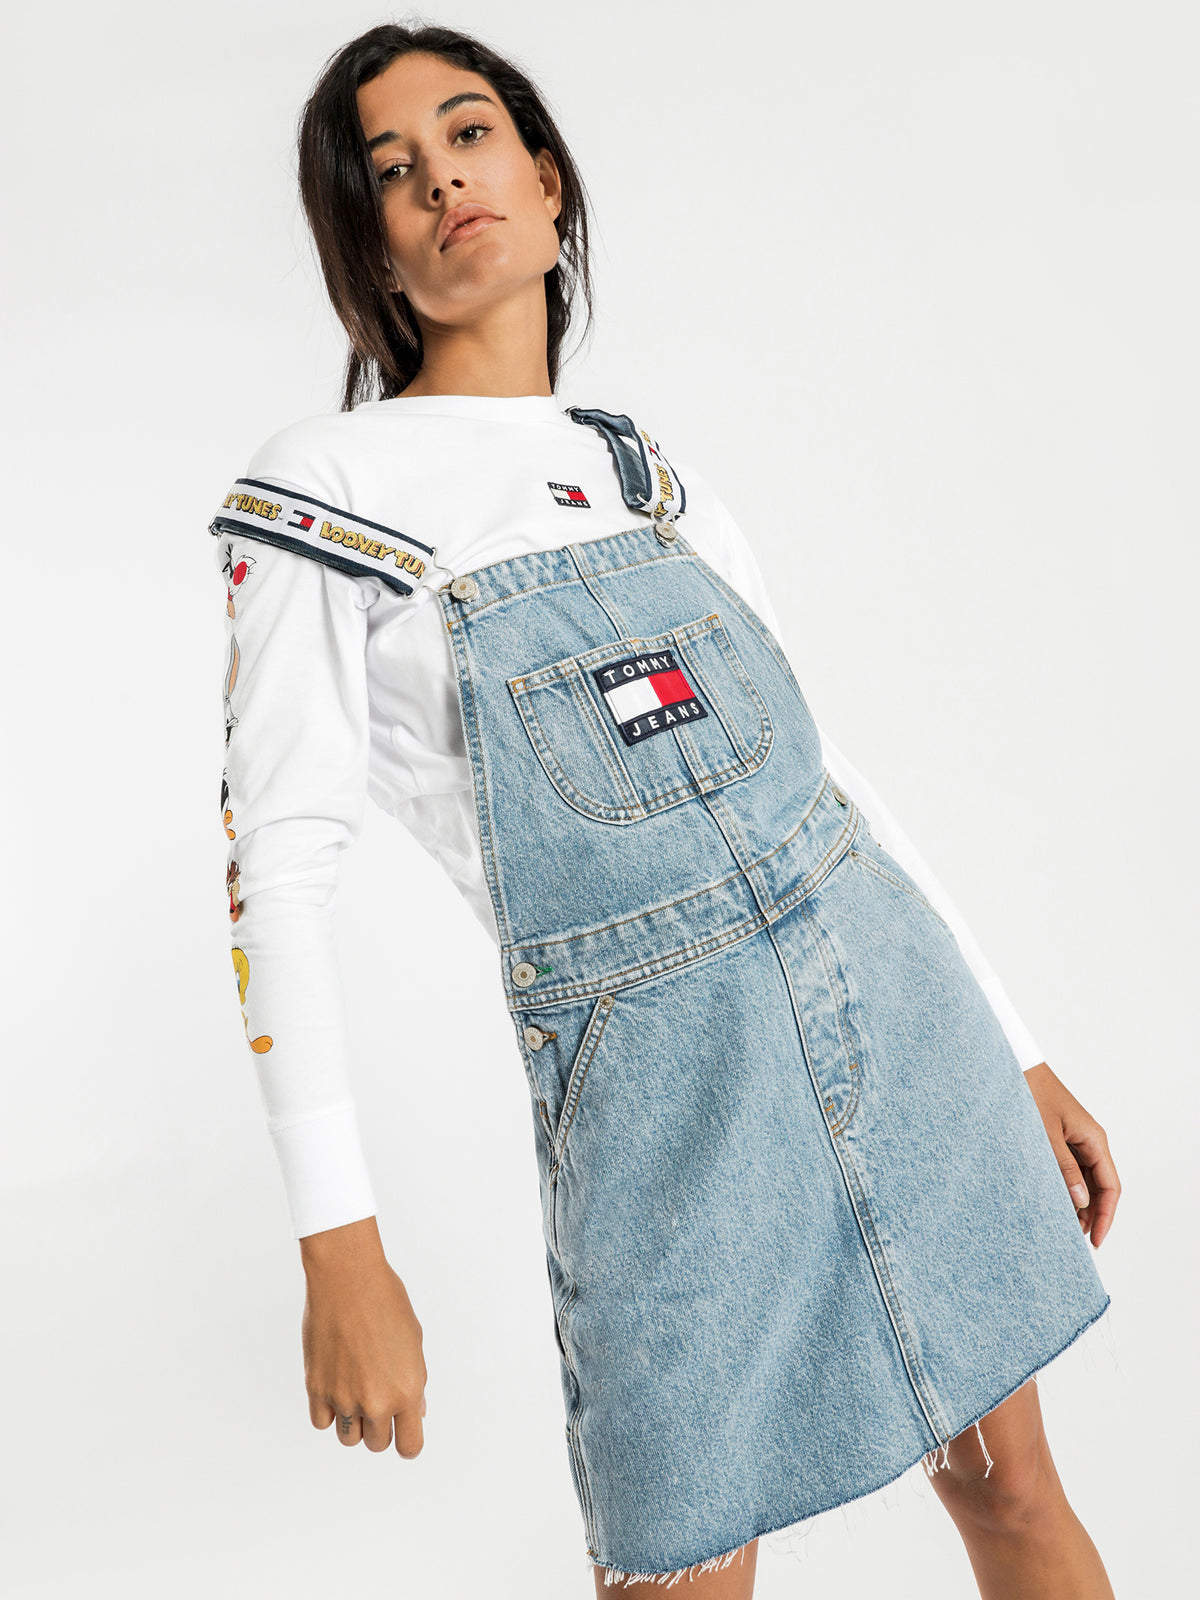 Tommy Jeans X Looney Tunes Overall Dress in Light Blue Denim